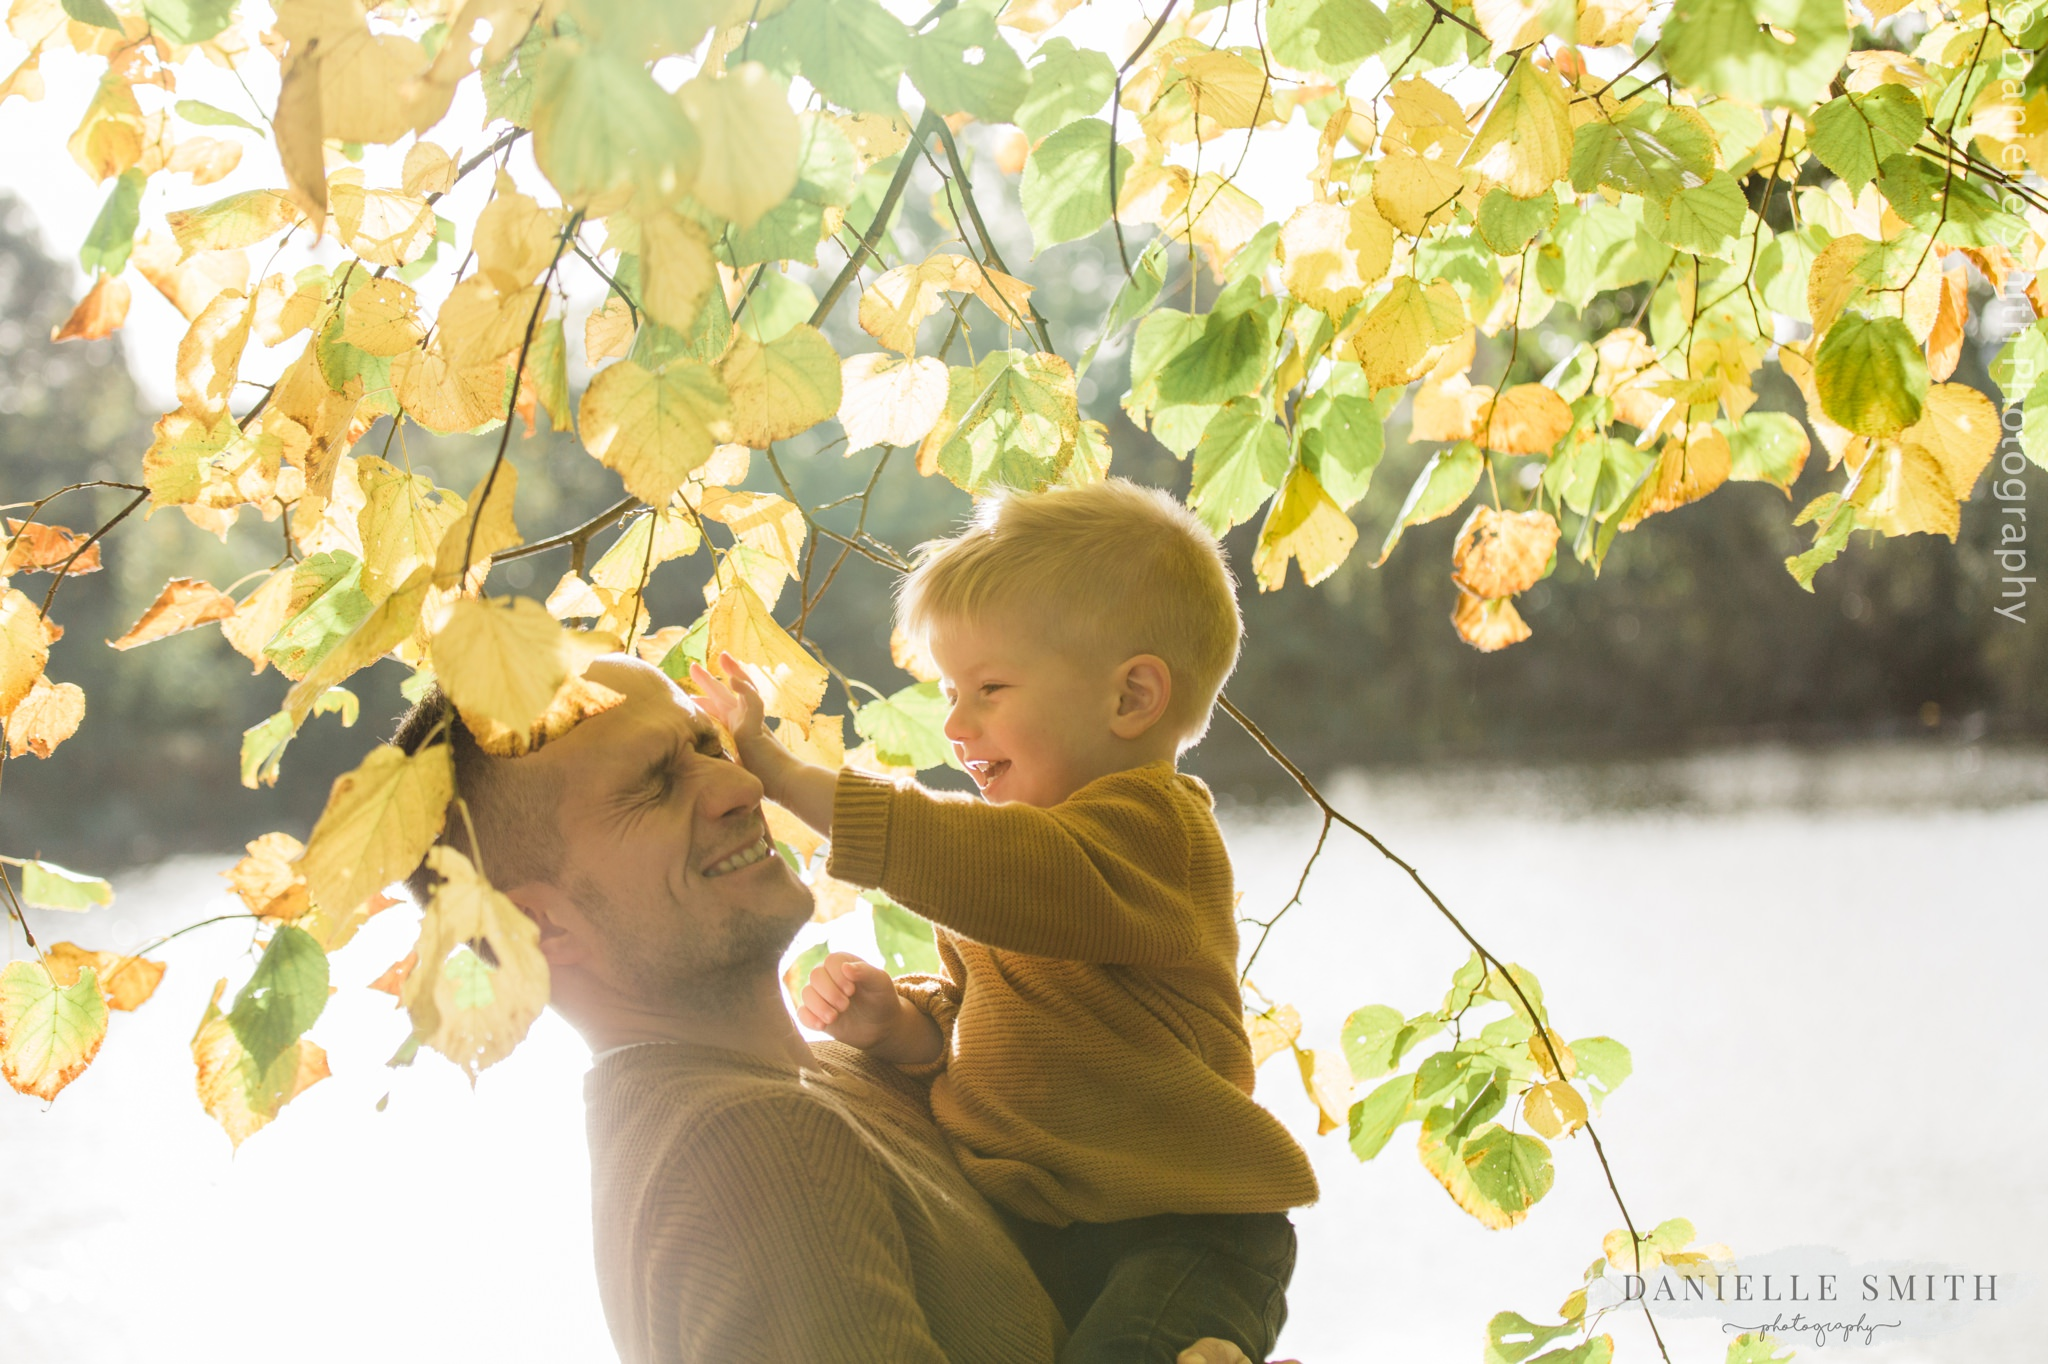 dad playing with his boy in autumn photo shoot boy poking dad in the eye - family photography